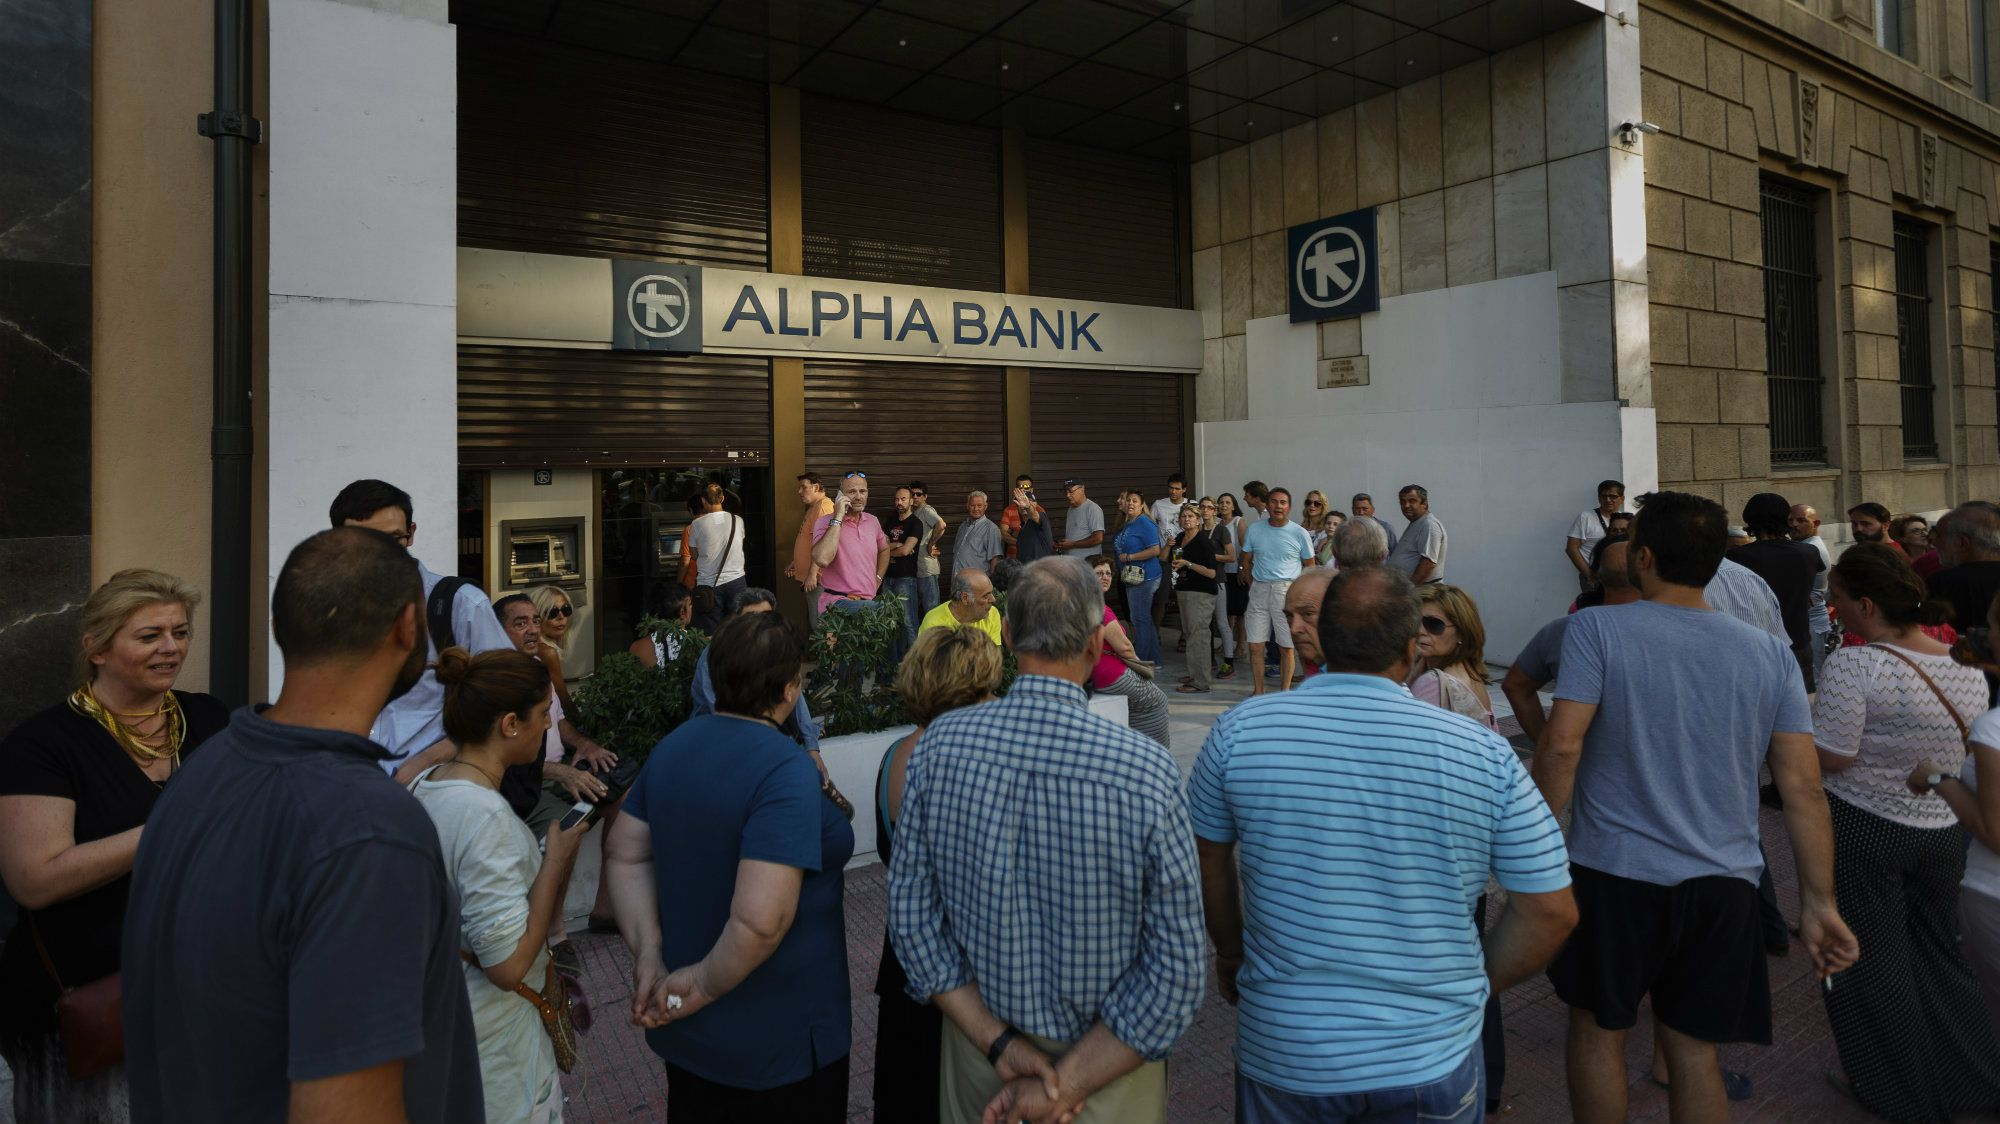 People stand in a queue to use ATM cash machine of a bank in central Athens, Sunday, June 28, 2015. Greece is anxiously awaiting a decision by the European Central Bank on whether to increase the emergency liquidity assistance banks can draw on from the country's central bank.